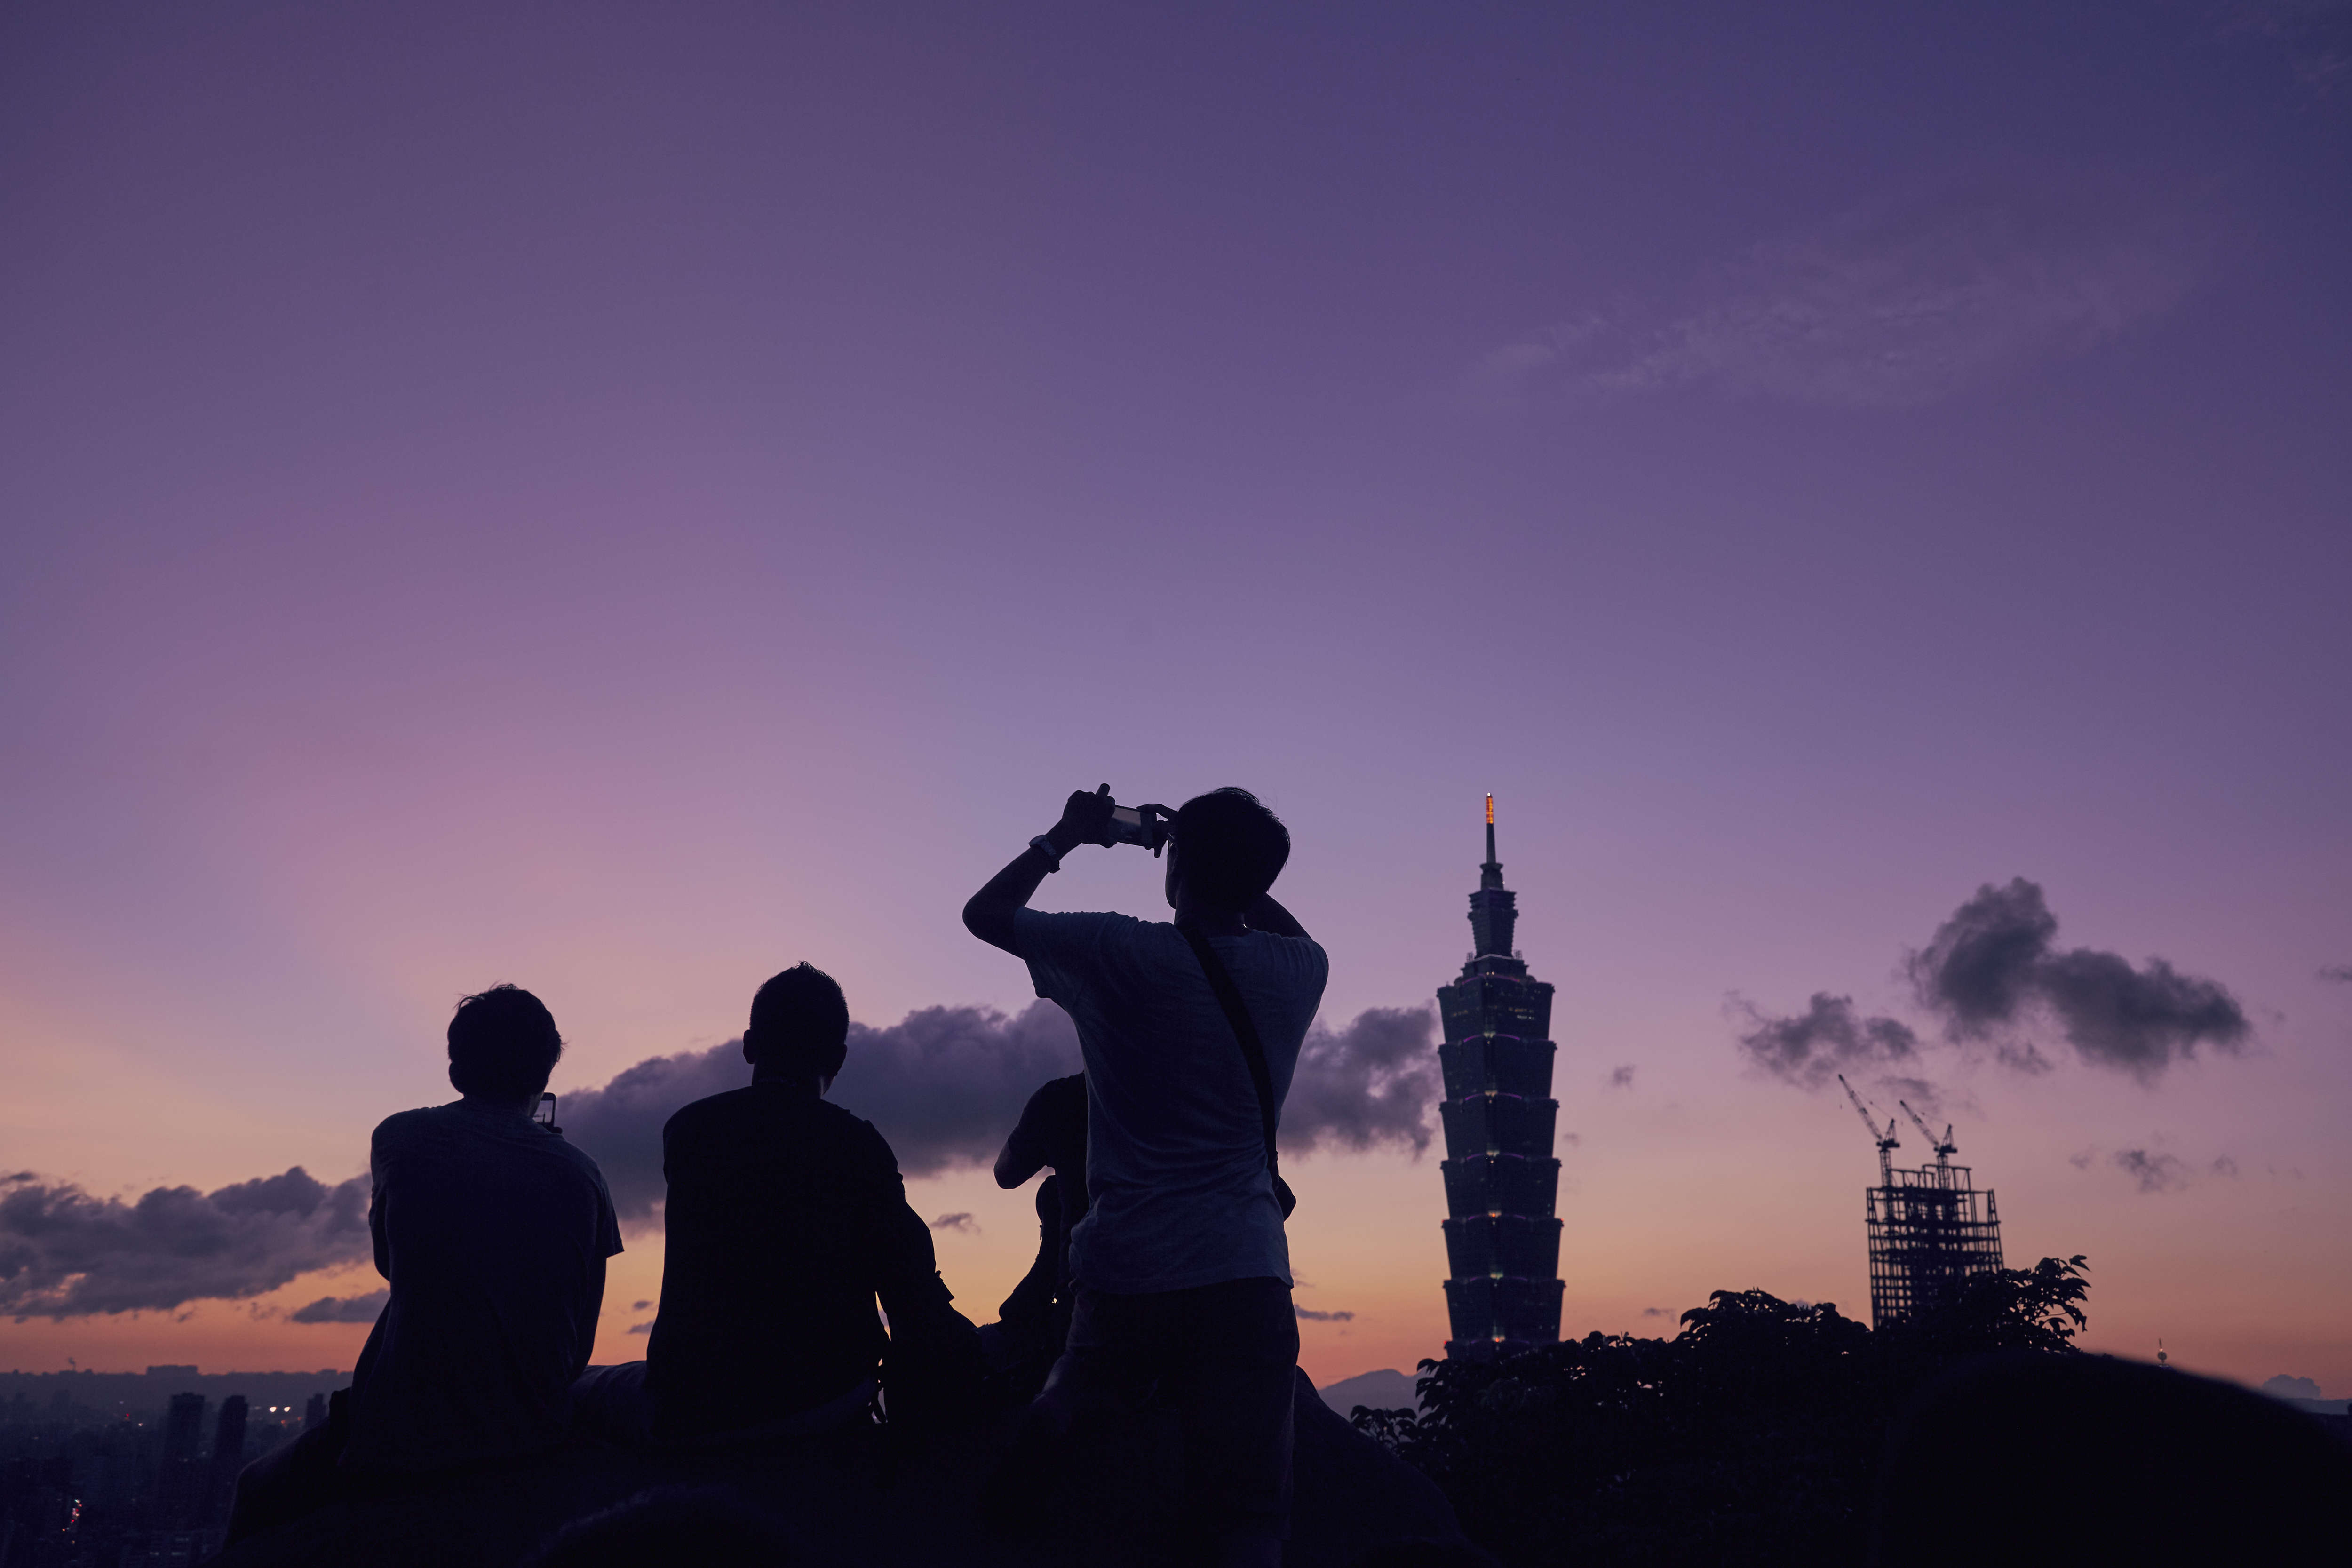 People gather the watch the sunset over Taipei. The Elephant Mountain hiking trail attracts photographers and tourists whenever there's a chance of a nice sunset